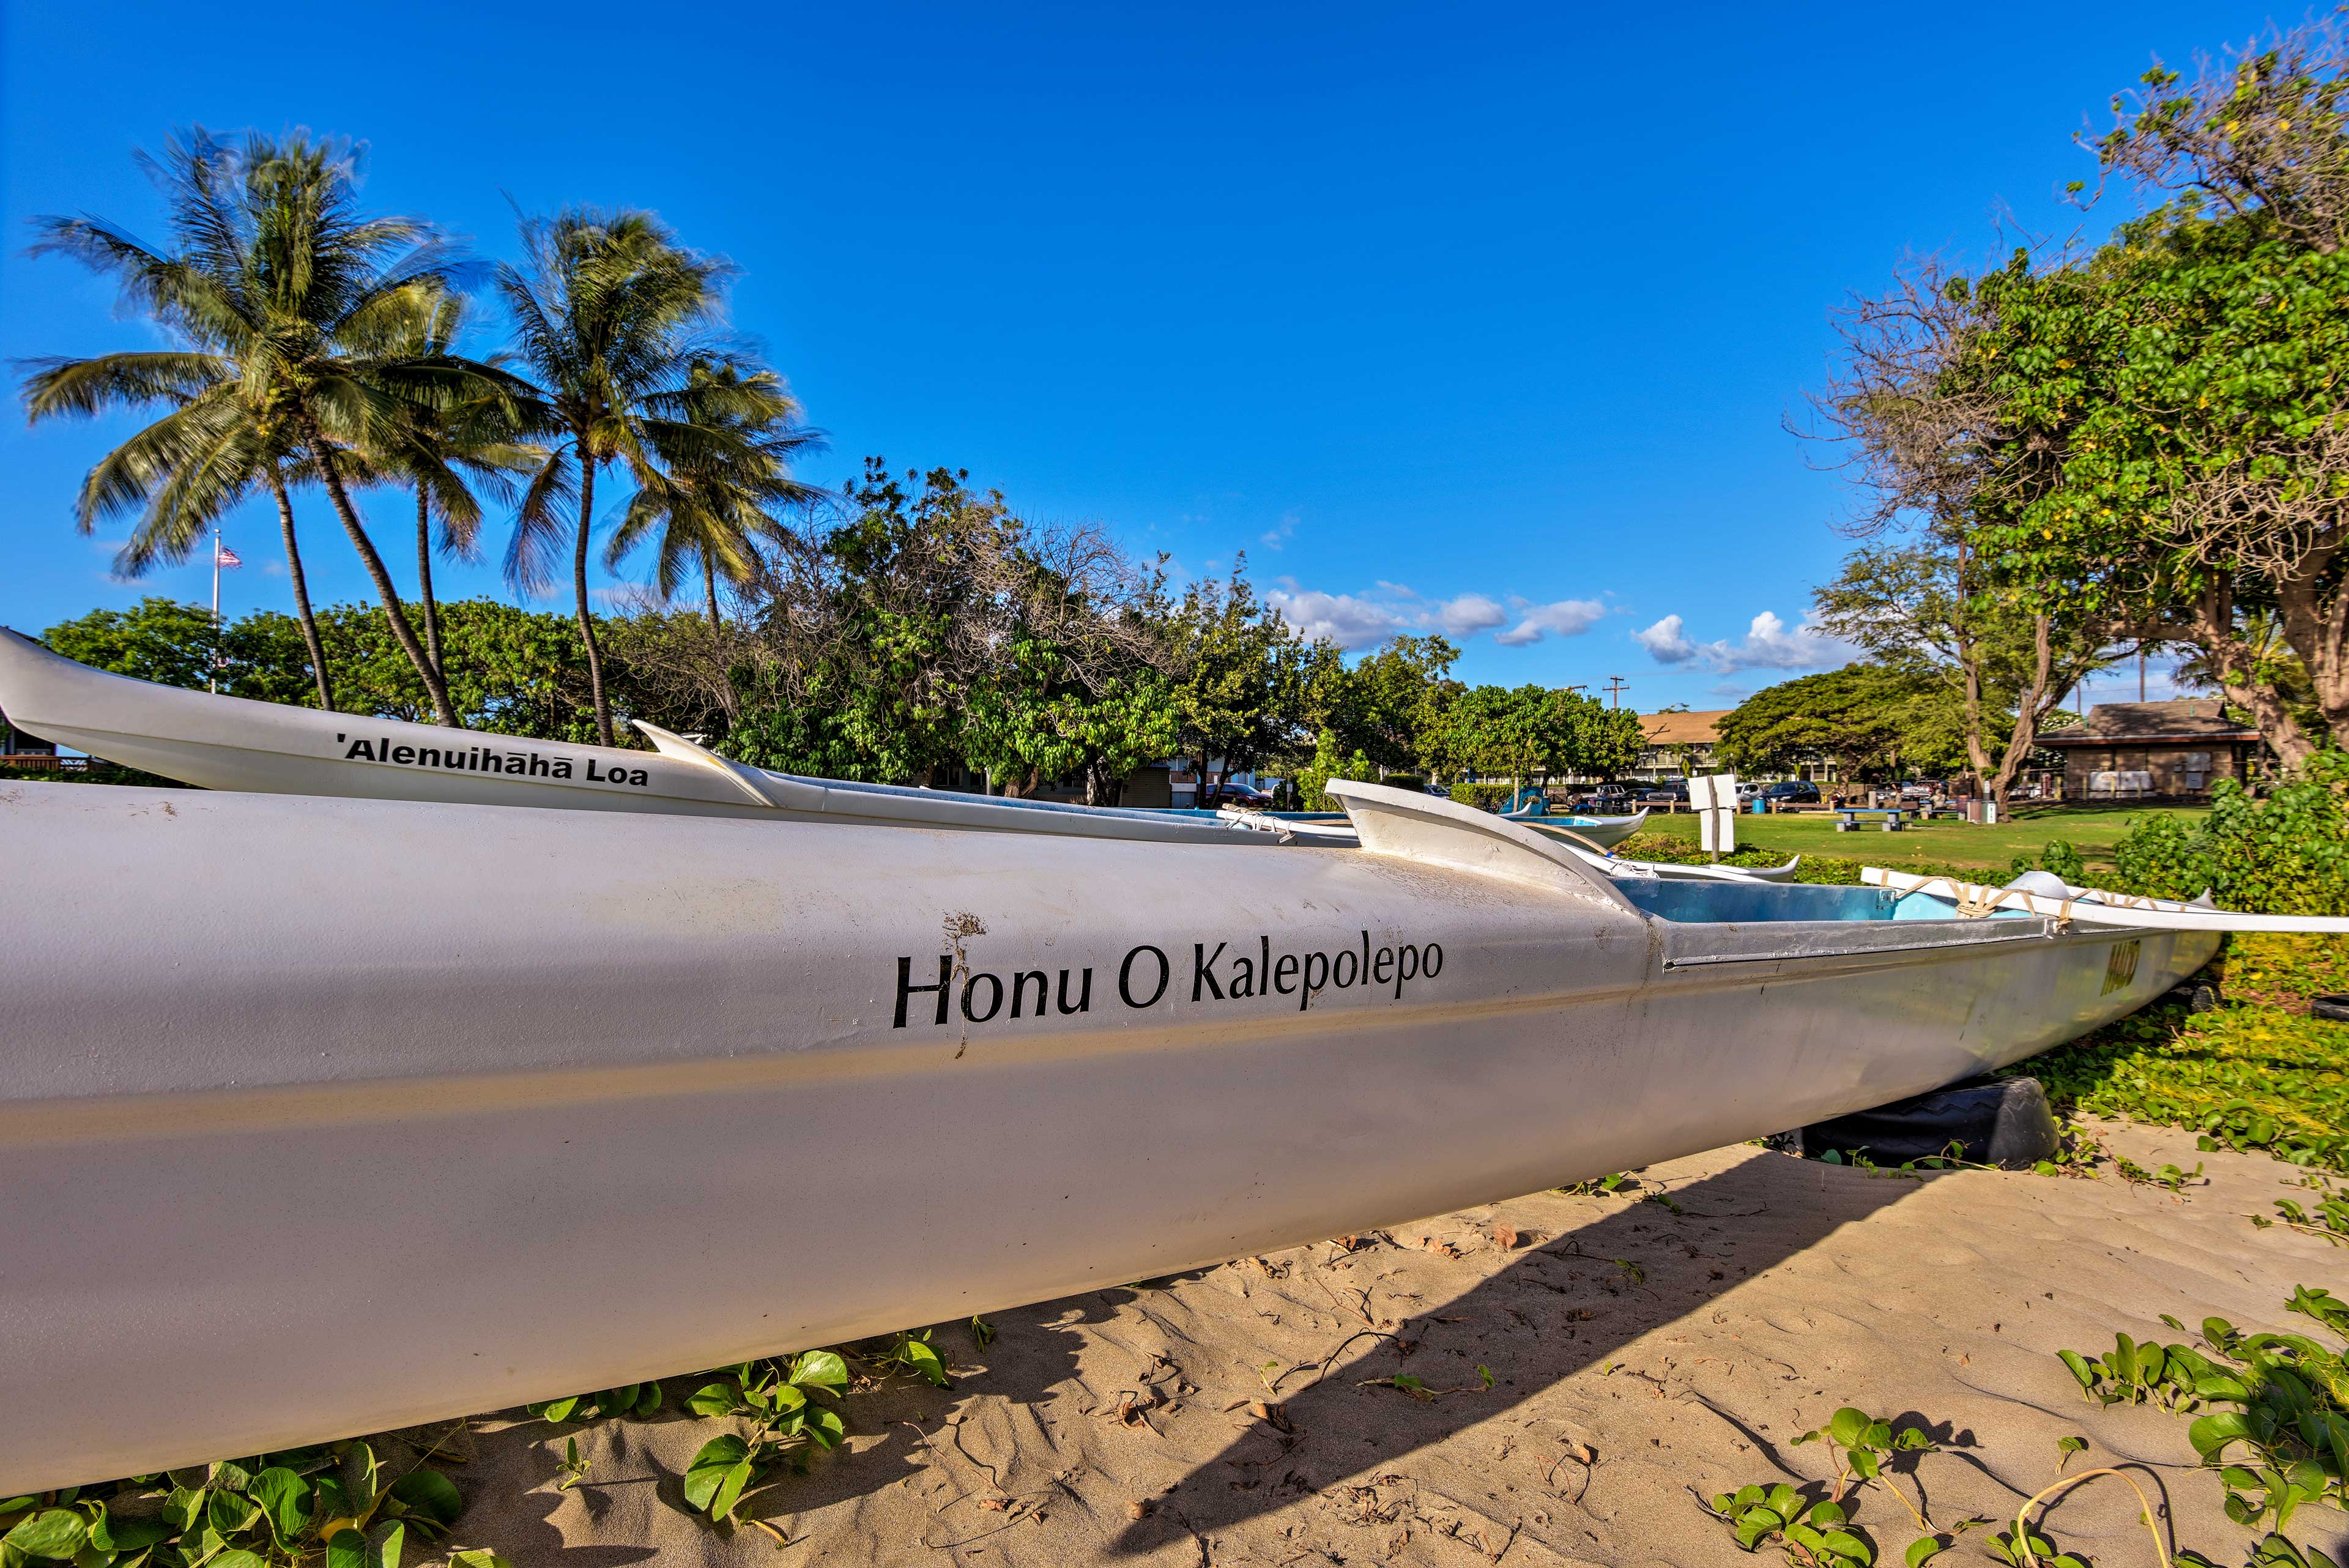 Rent kayaks or go on a catamaran to experience the ocean up close!